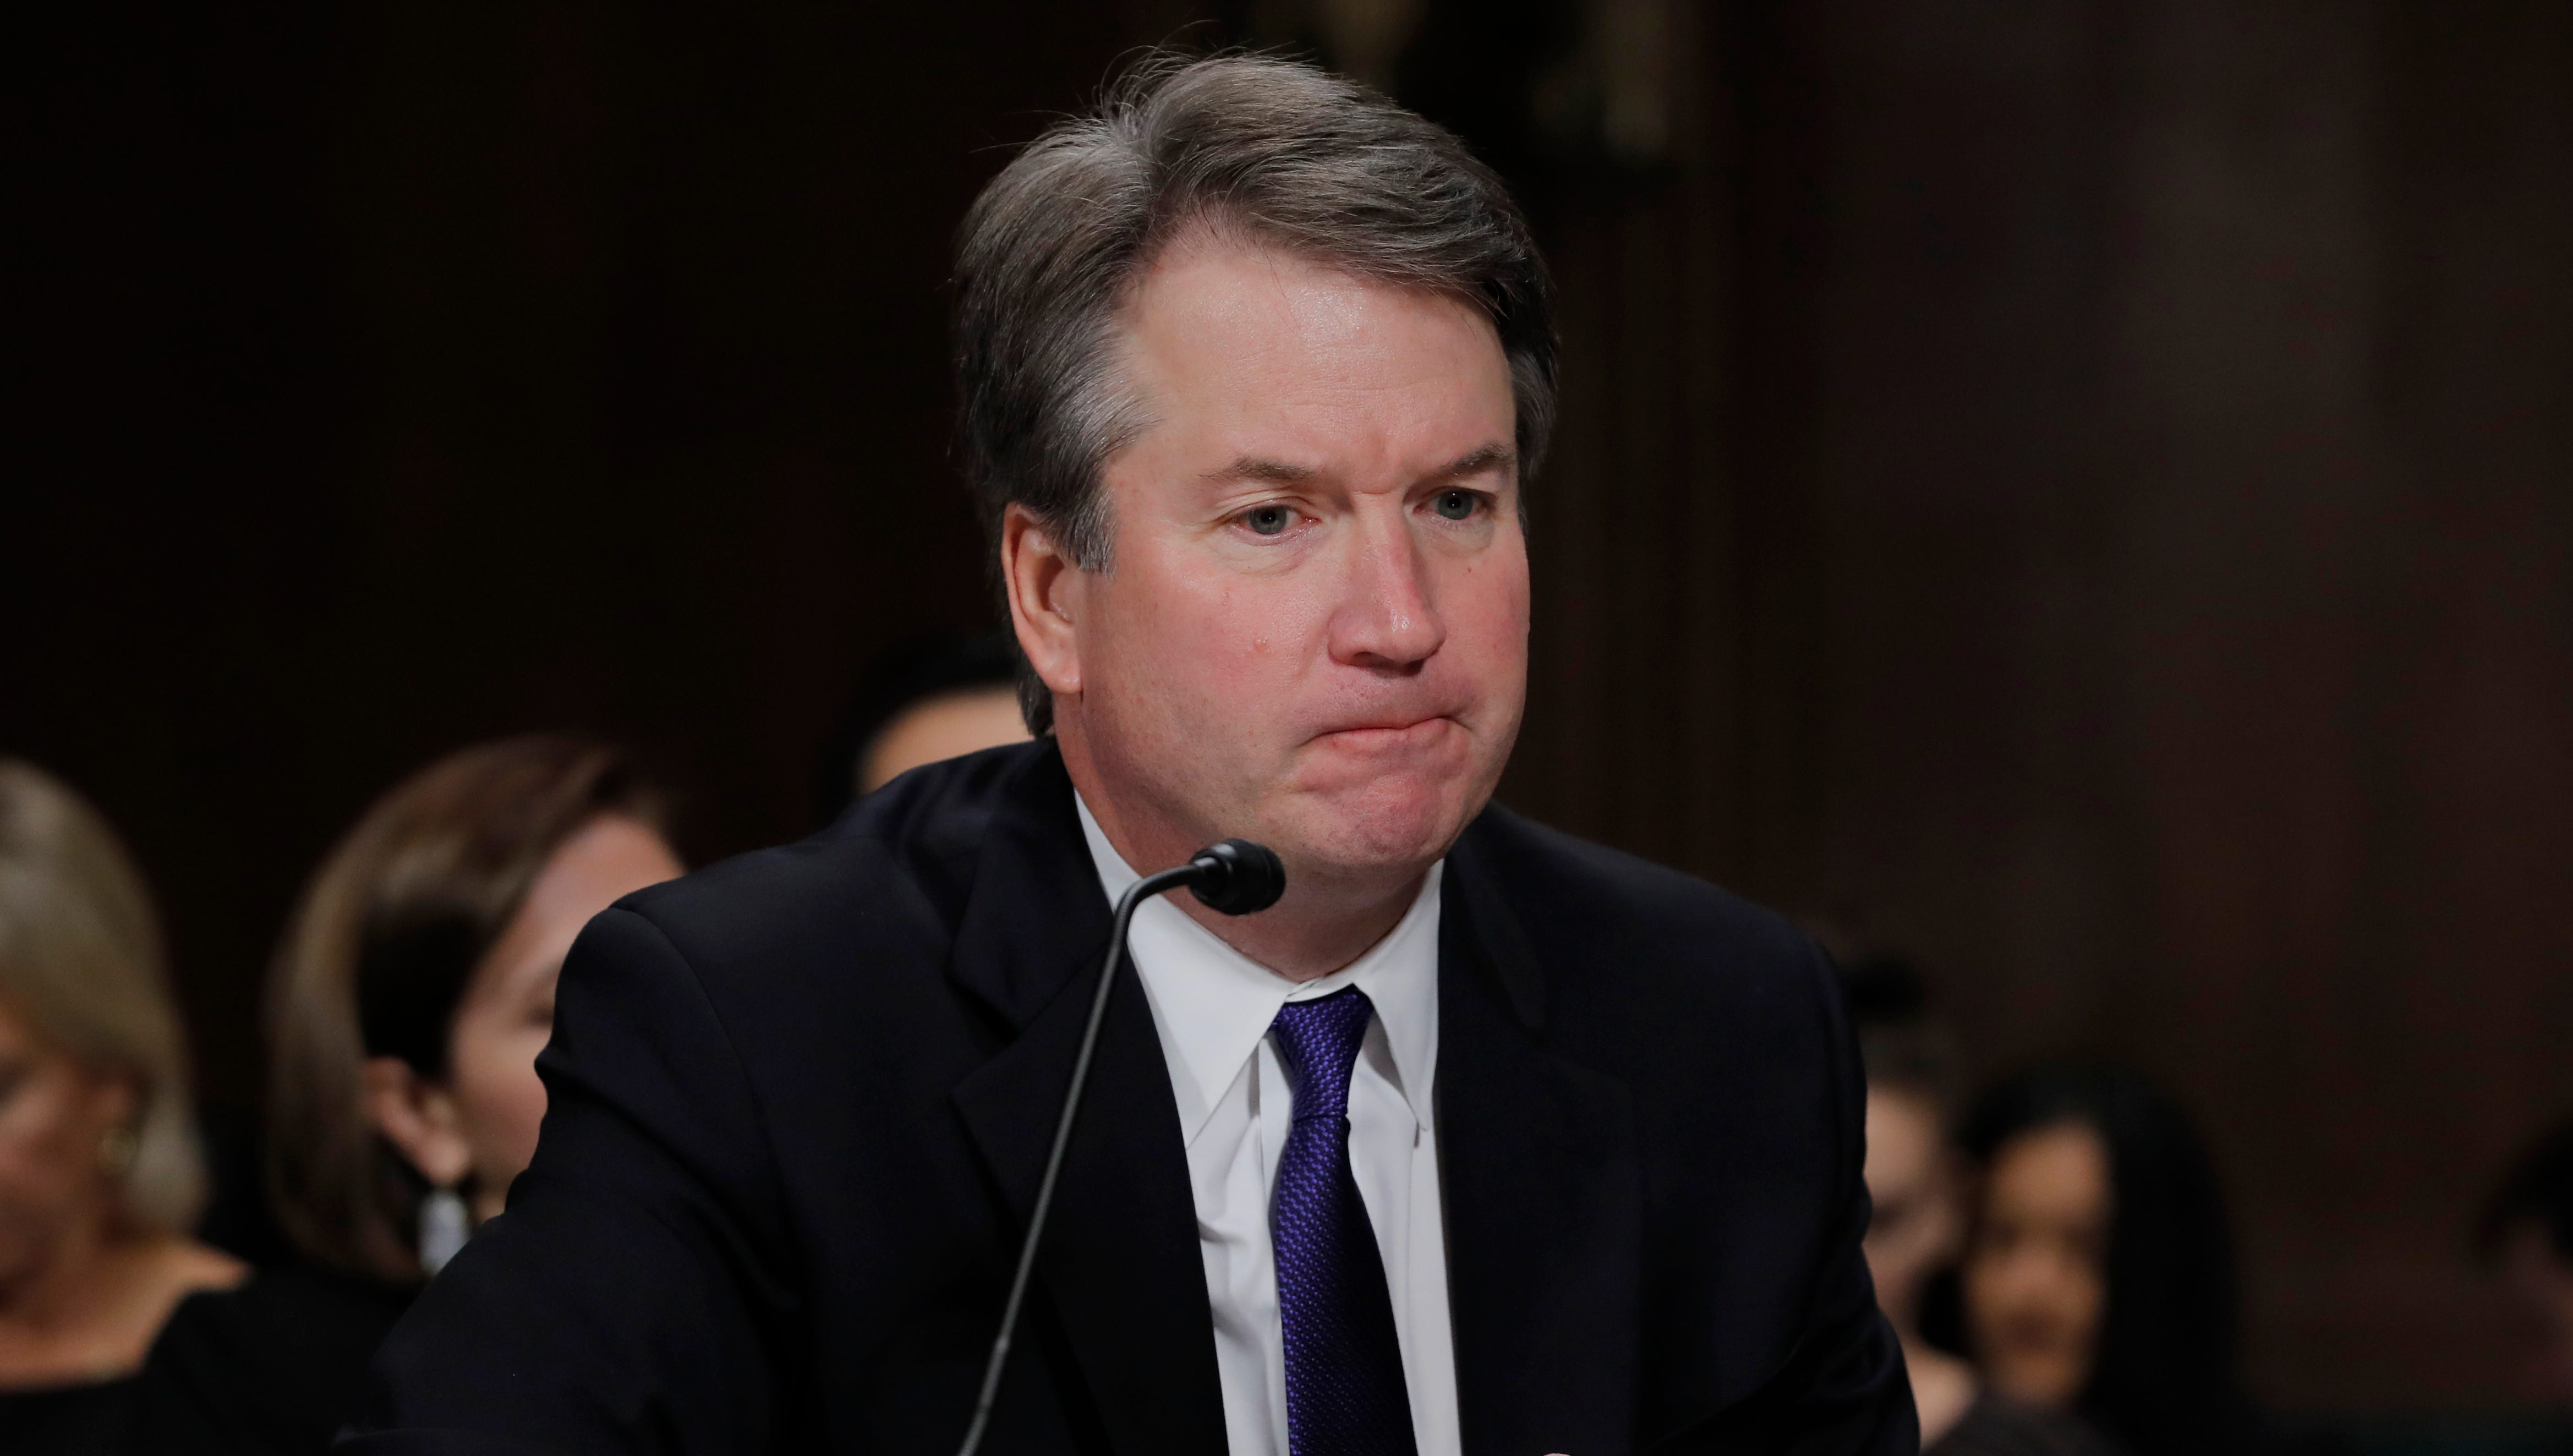 Brett Kavanaugh at his Supreme Court confirmation hearing on Sept. 27, 2018.